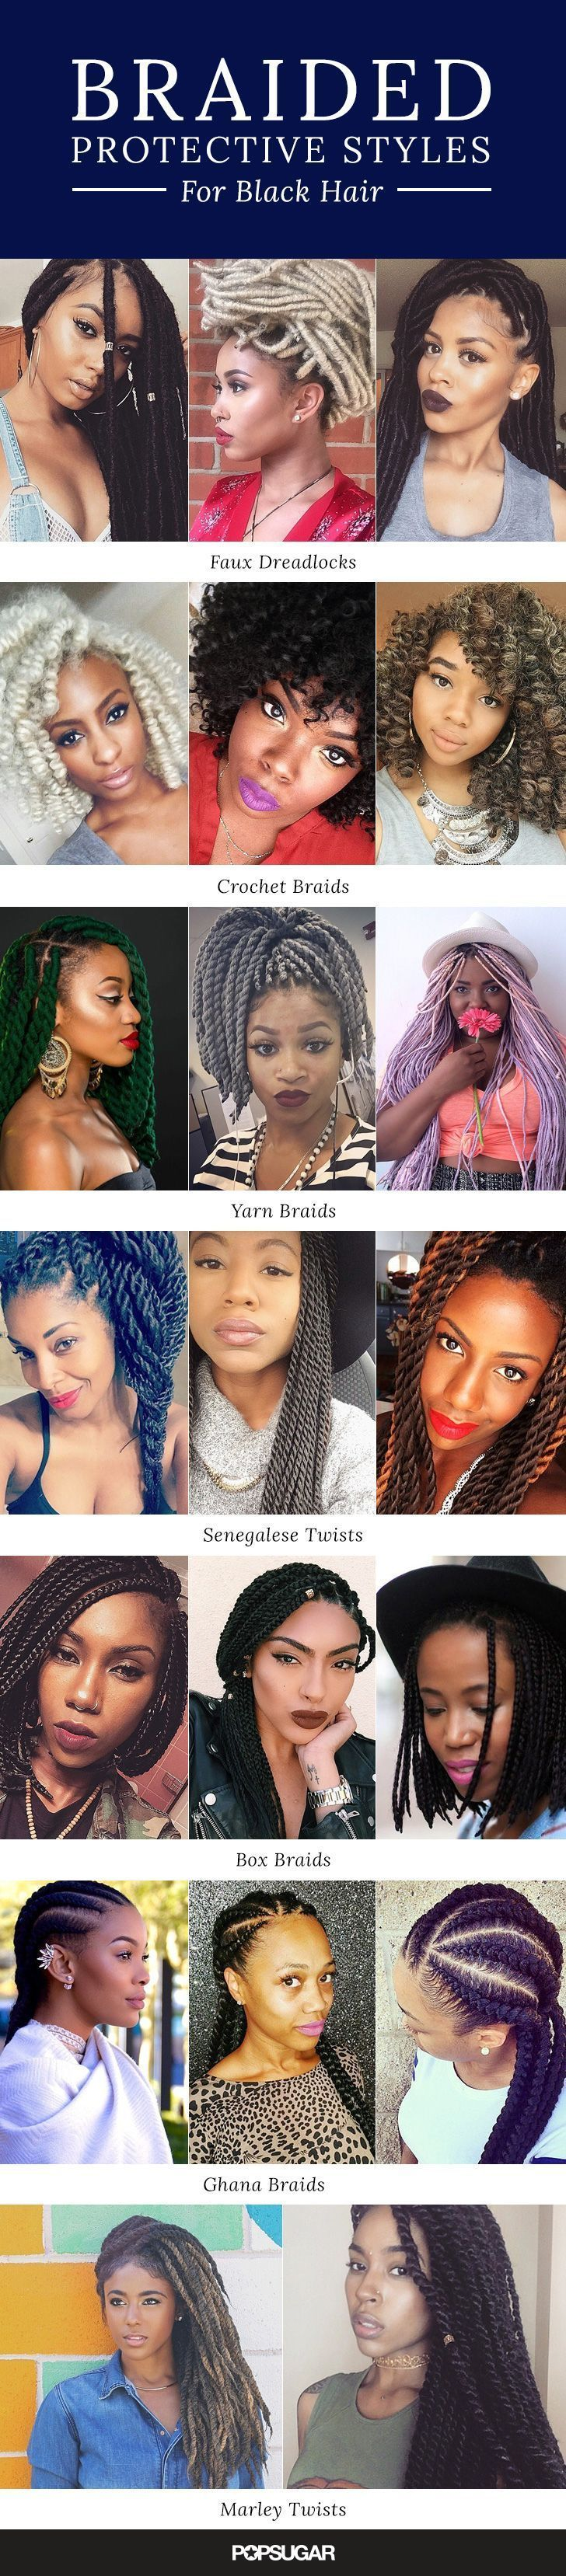 Looking for a new protective hairstyle for natural hair? These braids for black women add extensions for a longer-lasting style that's easy to maintain. There are twists, dreadlocks, crochet braids, Senegalese twists, box braids, Ghana braids, cornrows, and marley twists.